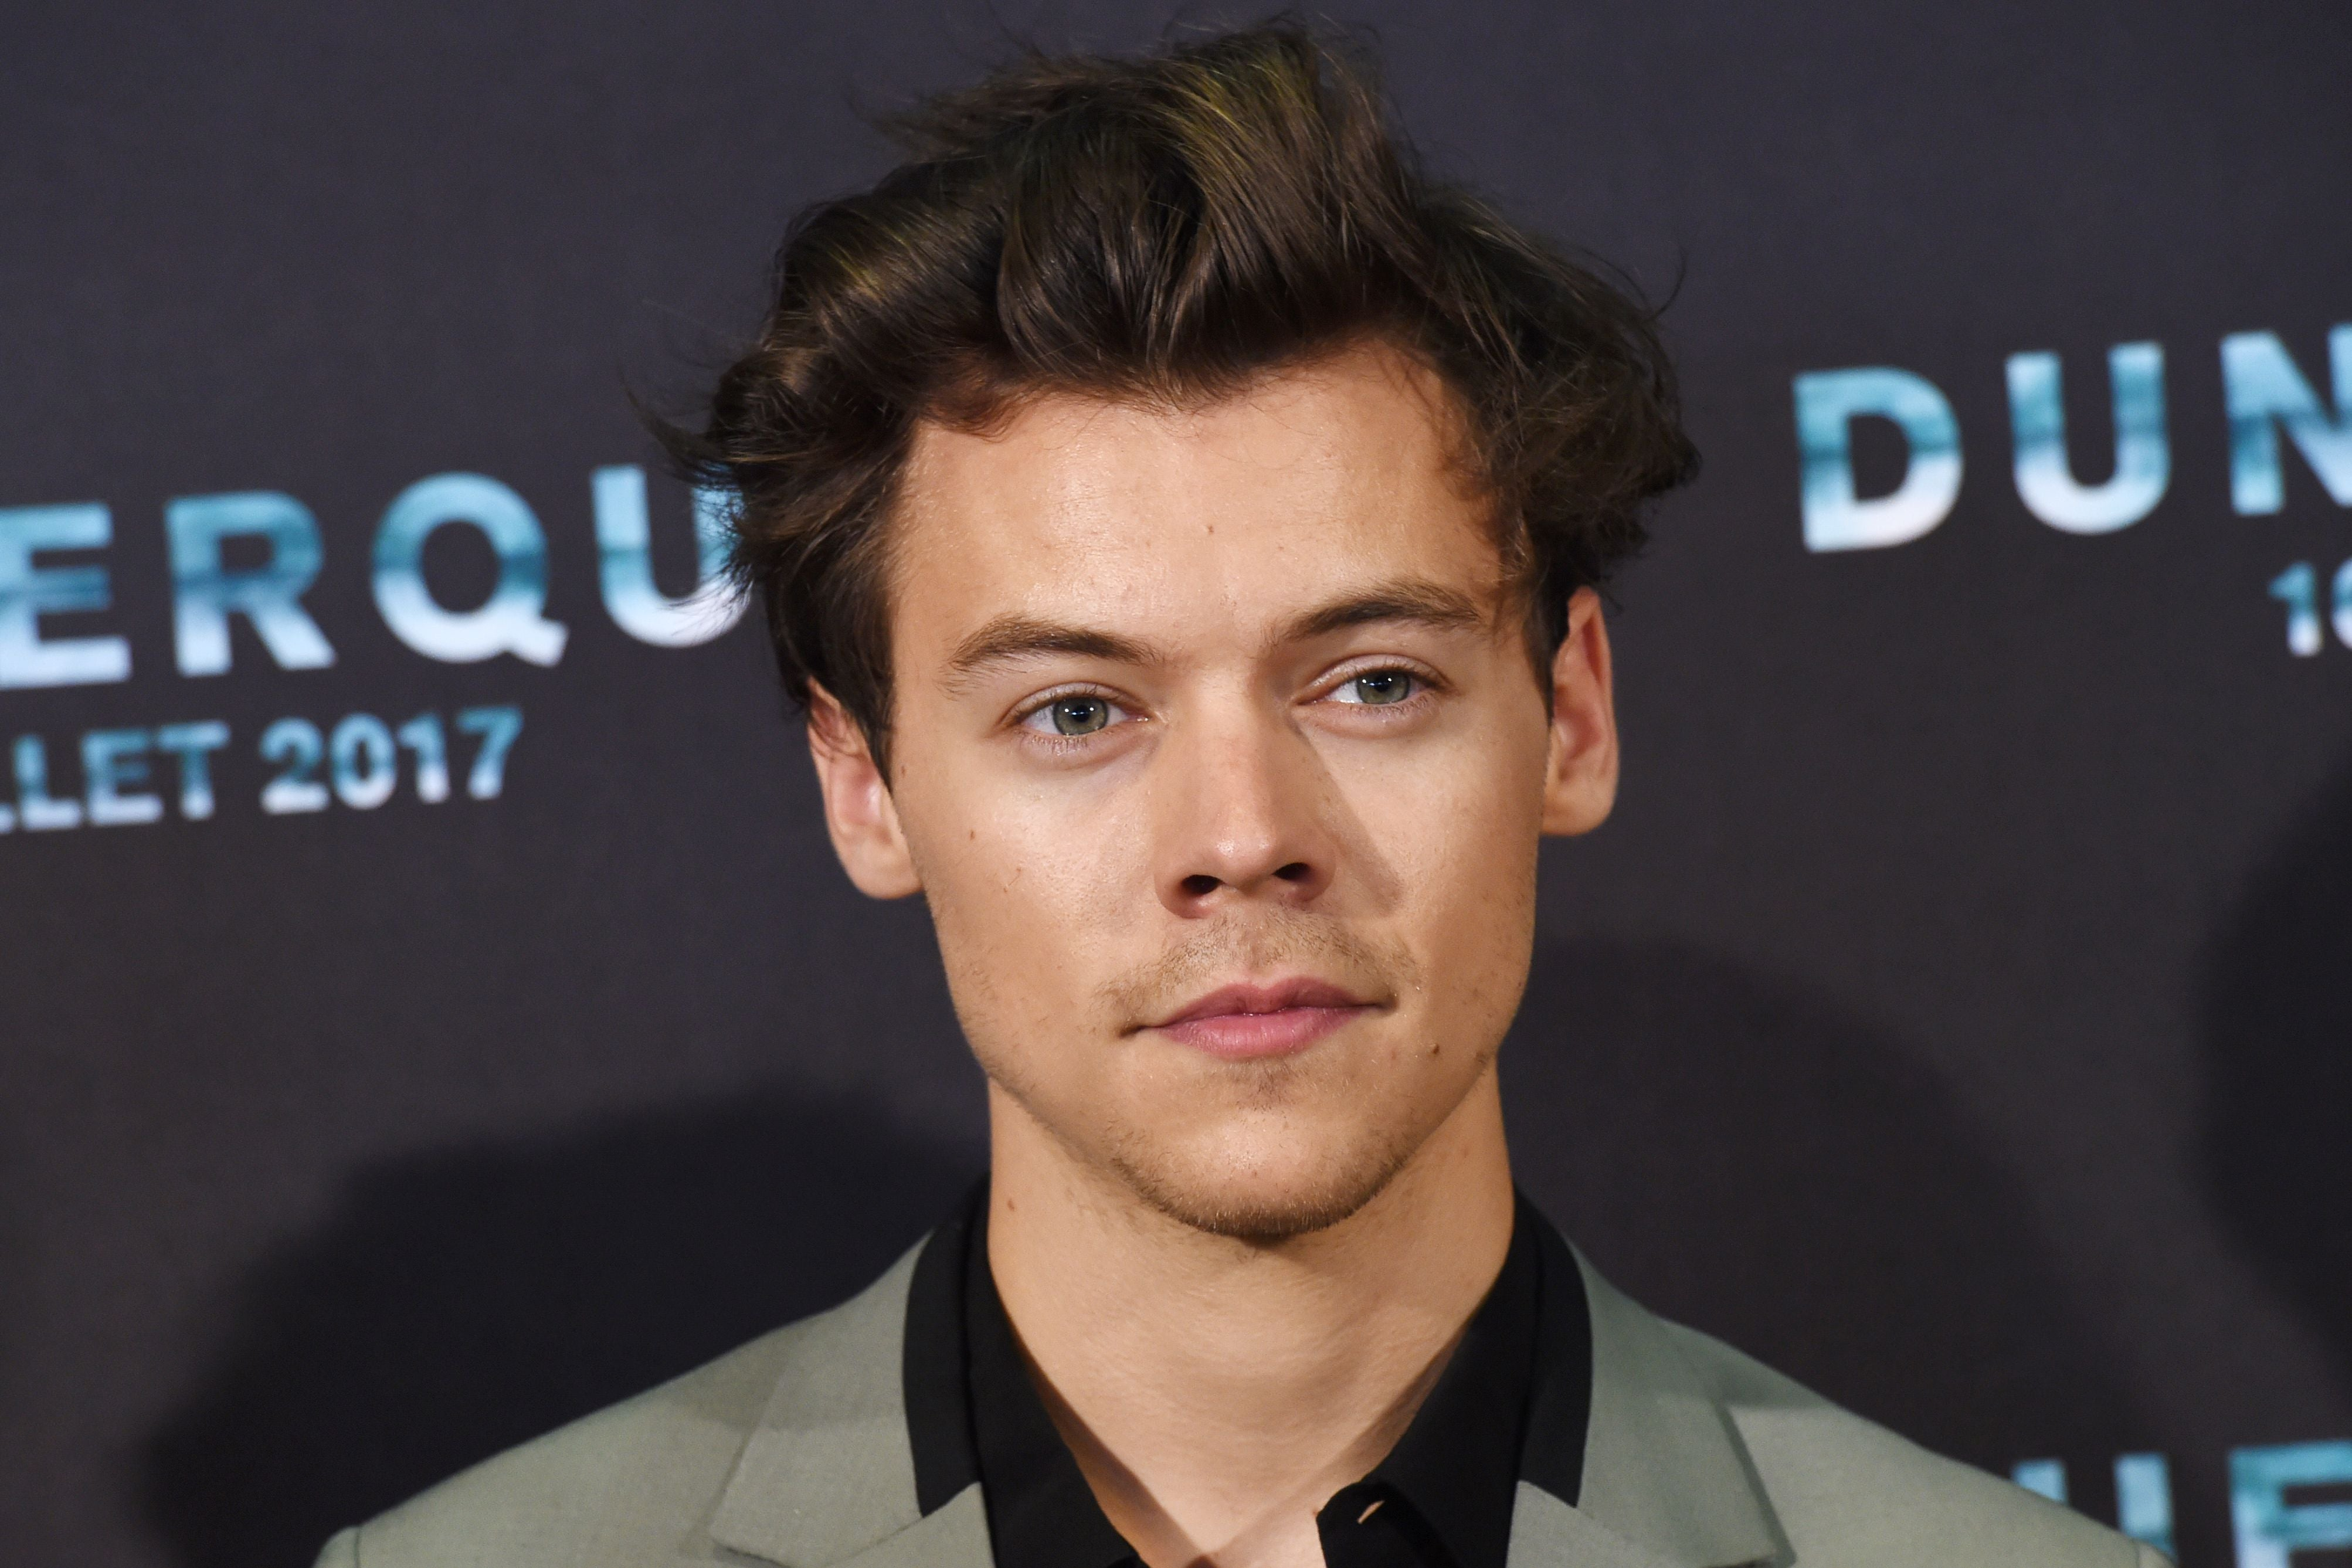 Harry Styles Reportedly Turns Down Role of Prince Eric in Live-Action 'The Little Mermaid'